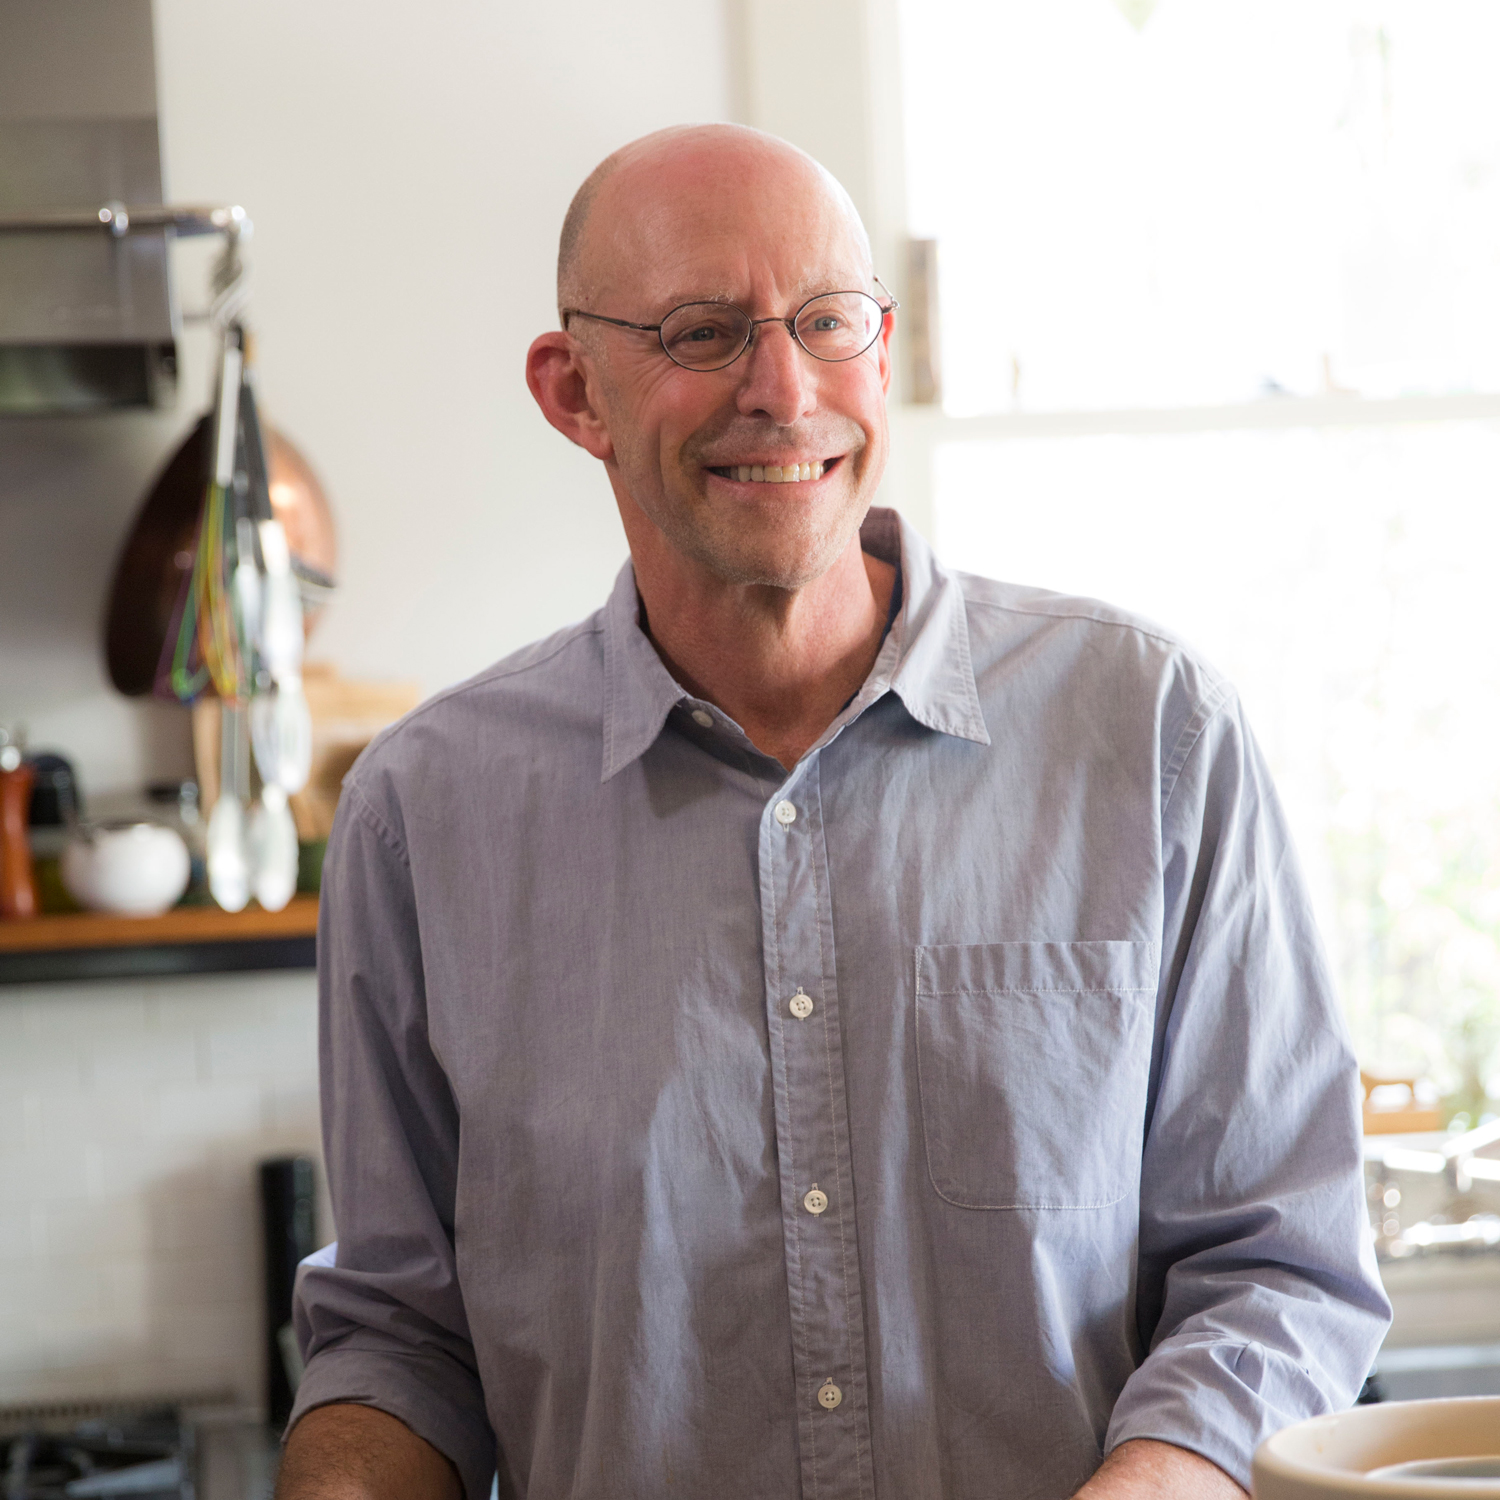 Michael Pollan Wants to Rewrite the Narrative on Cooking